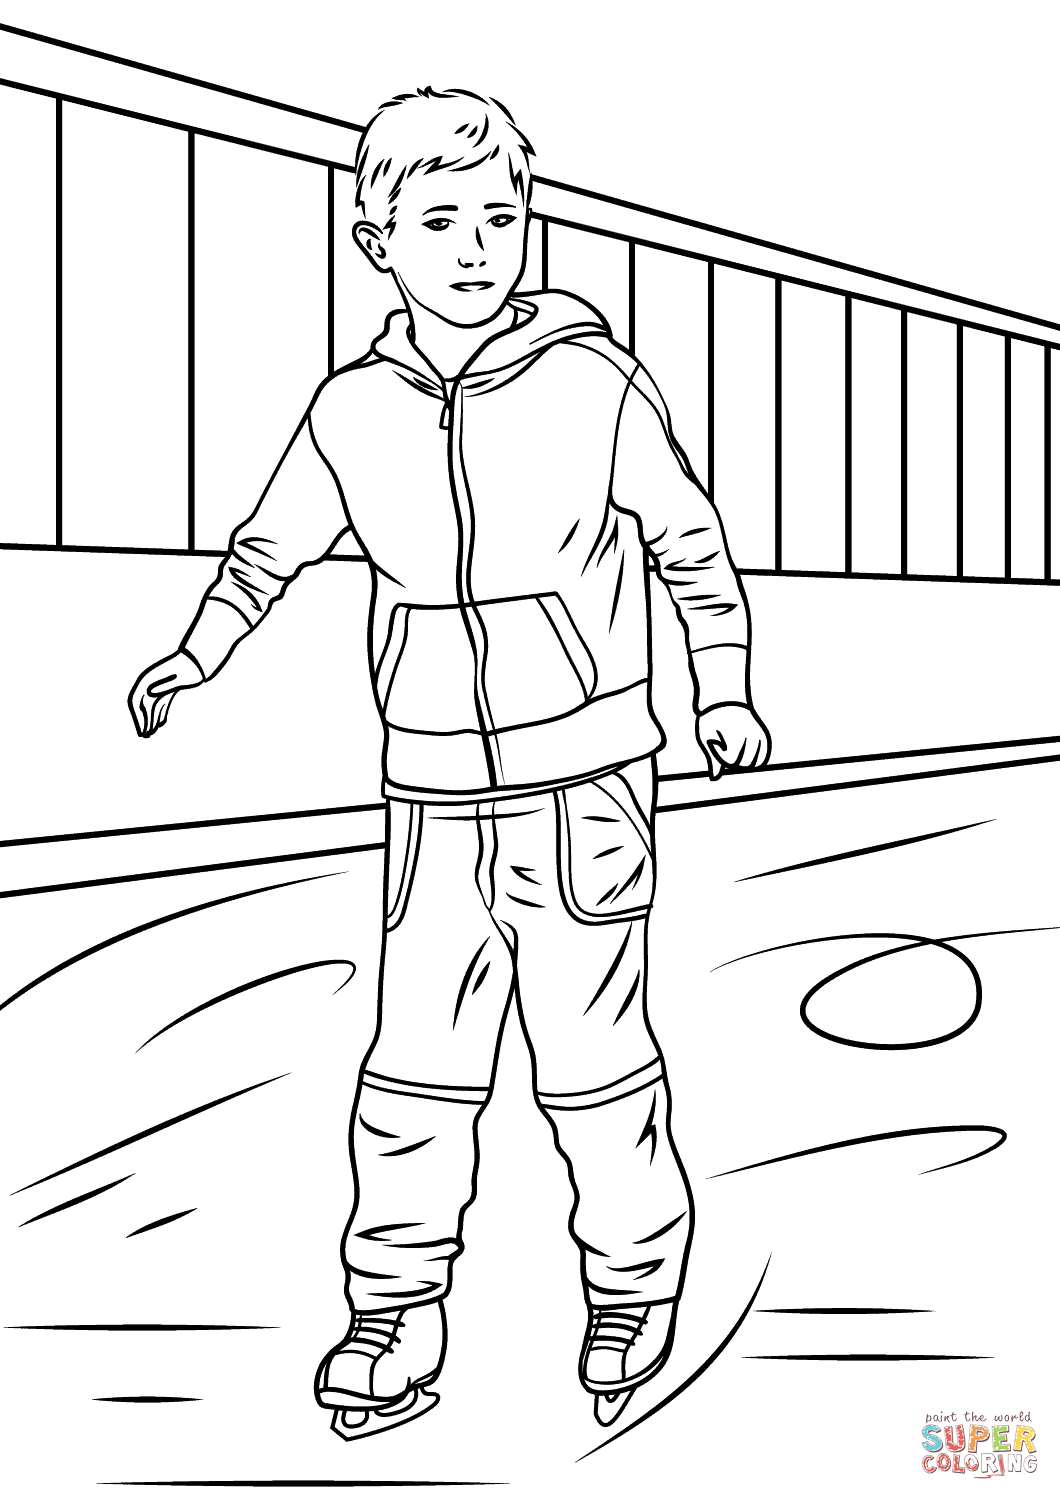 1060x1500 Boy Ice Skater Coloring Page Free Printable Coloring Pages